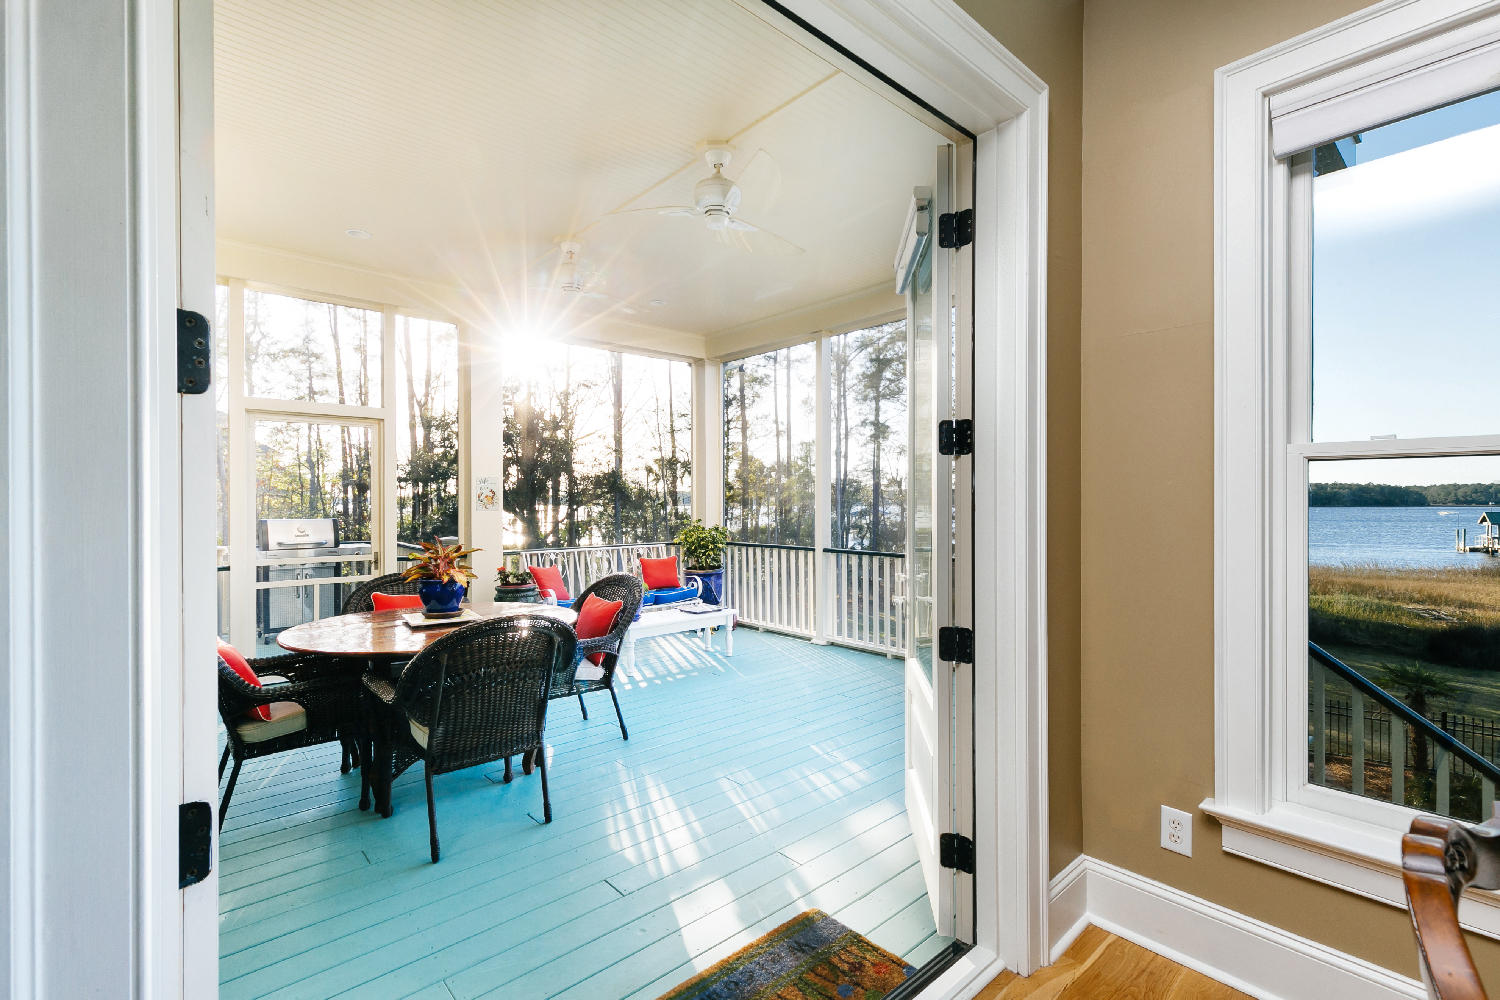 Rivertowne On The Wando Homes For Sale - 2212 Hartfords Bluff, Mount Pleasant, SC - 52